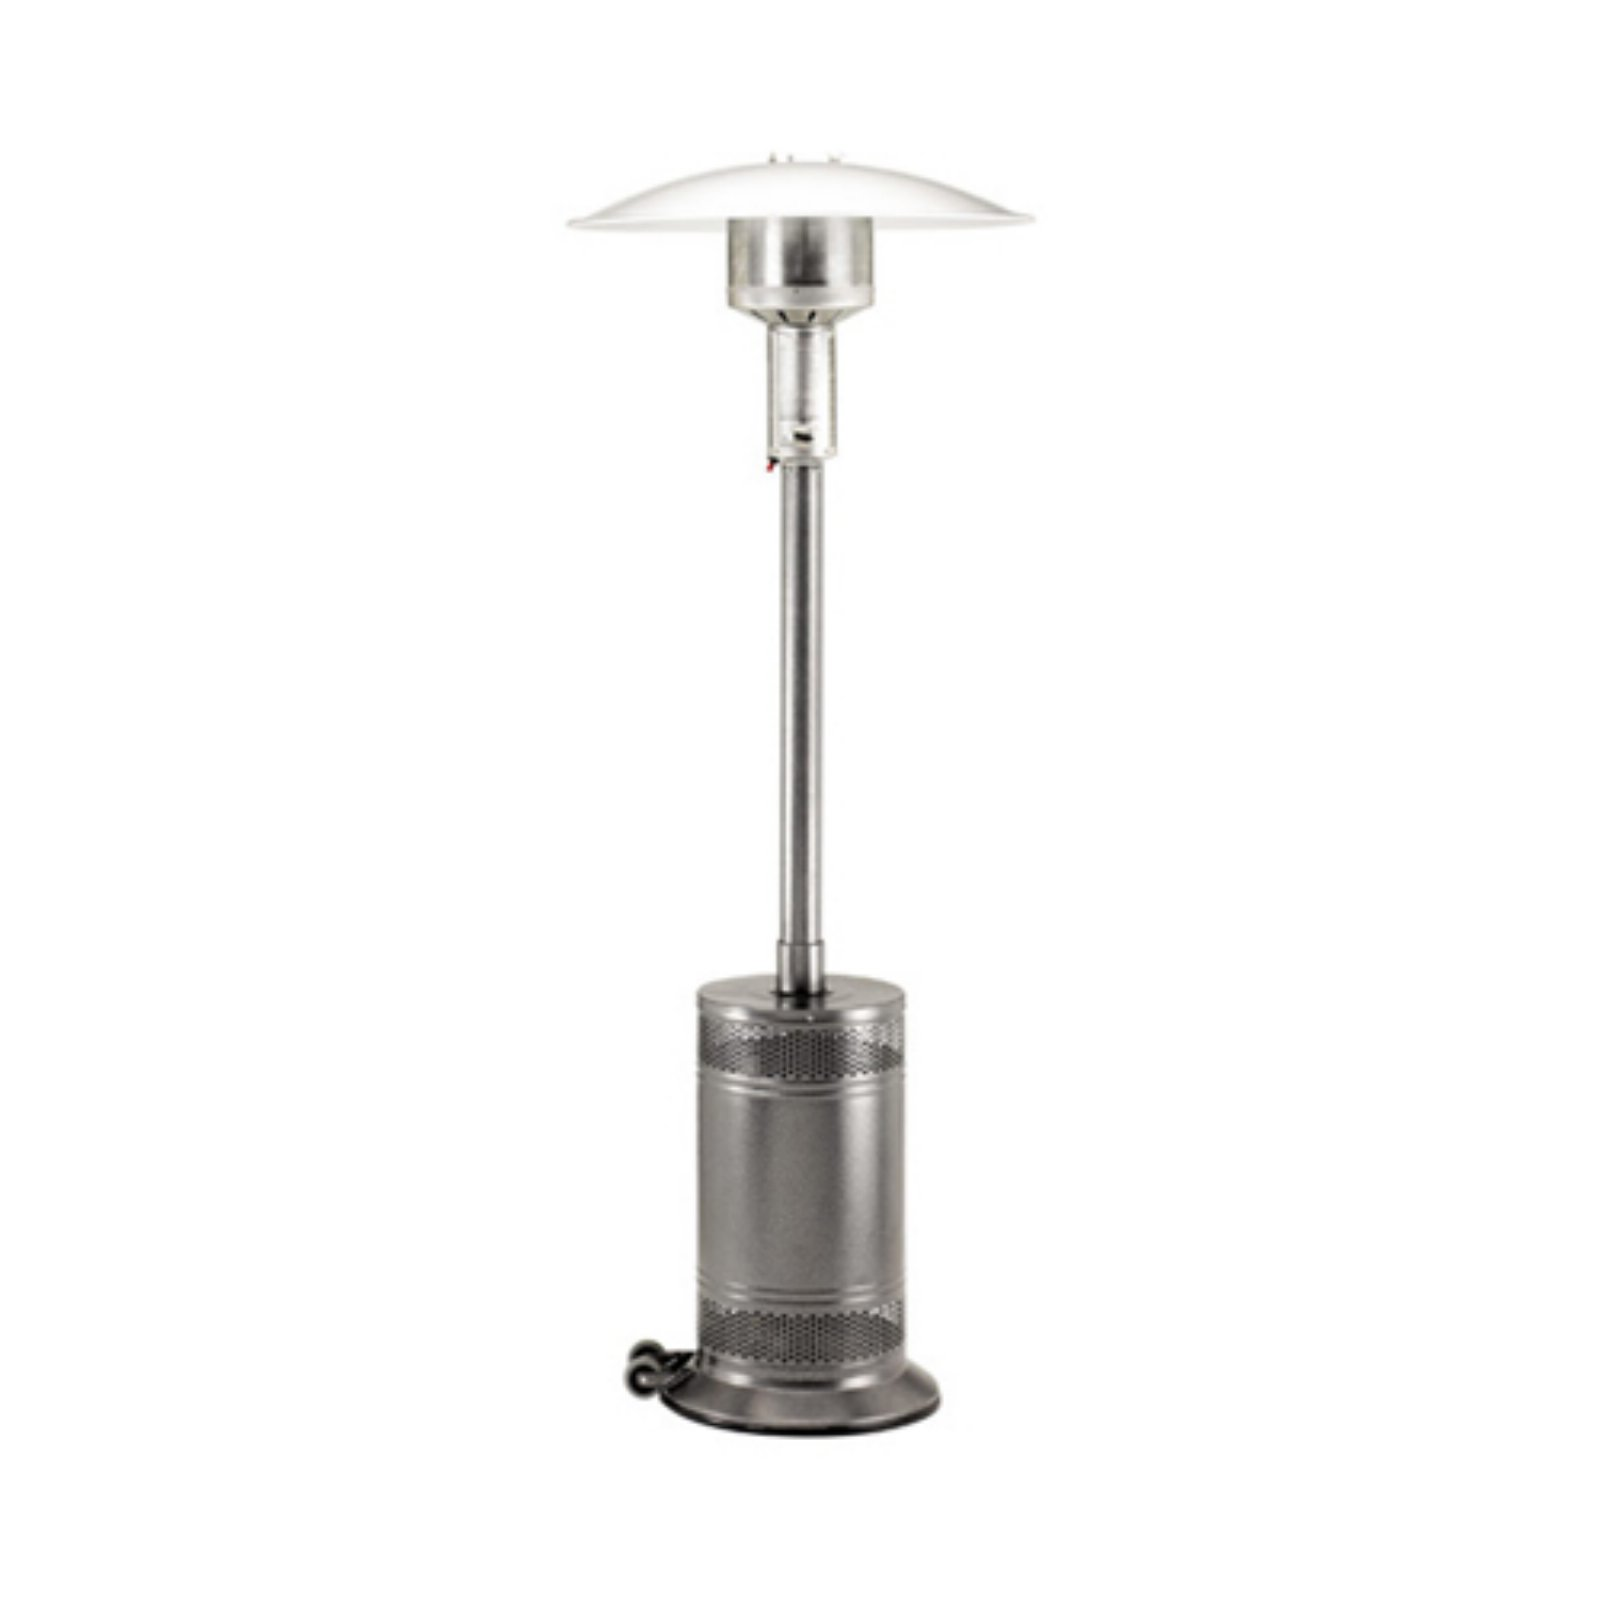 Patio Comfort Silver Portable Patio Heater by AEI Corporation